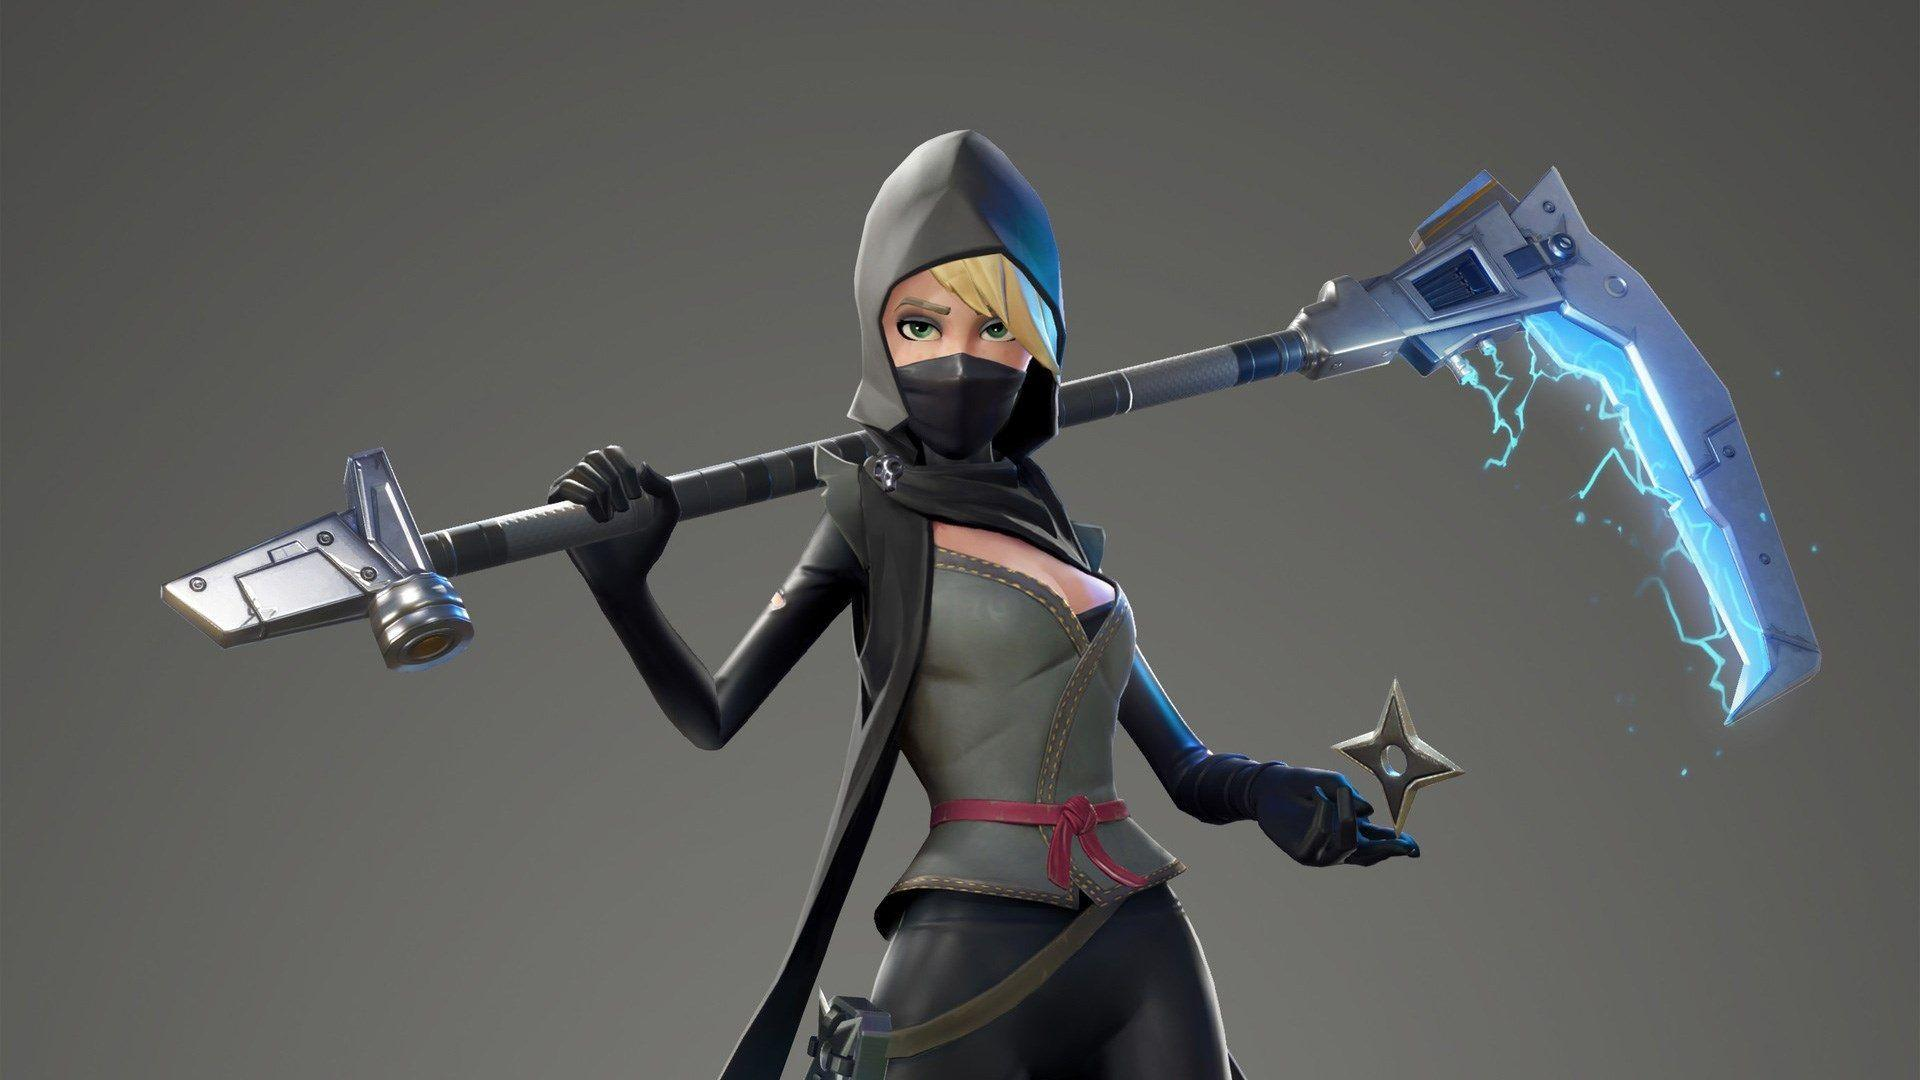 Can we get this skin in Battle Royale? : FortNiteBR